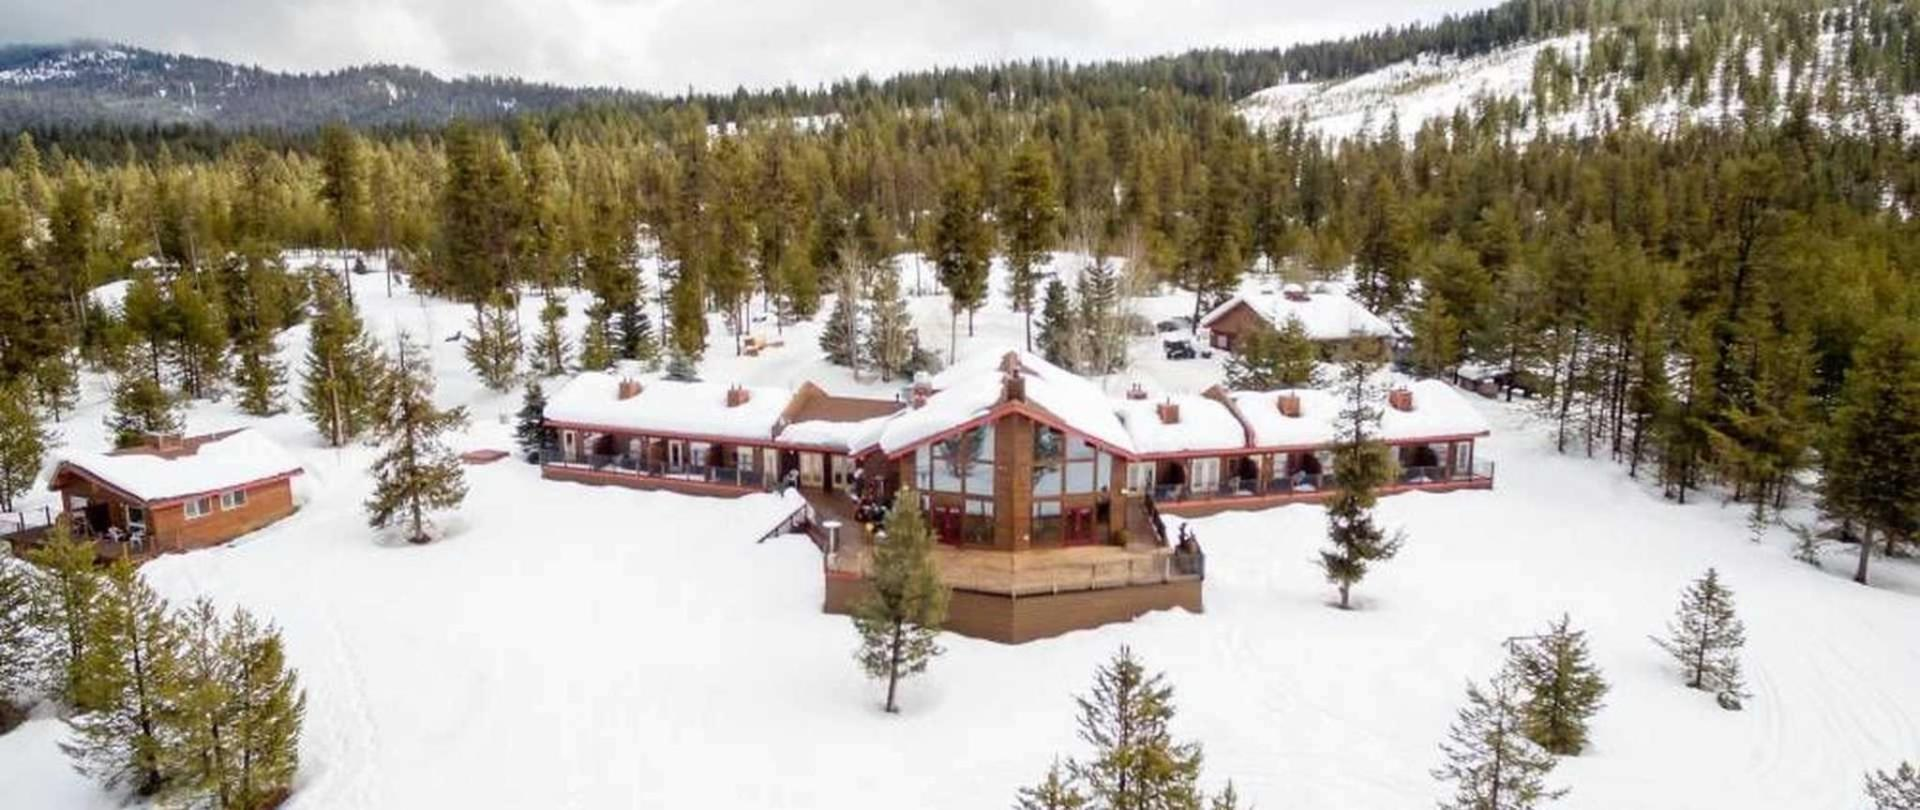 Bear Creek Lodge McCall Official Site | Lodges in McCall